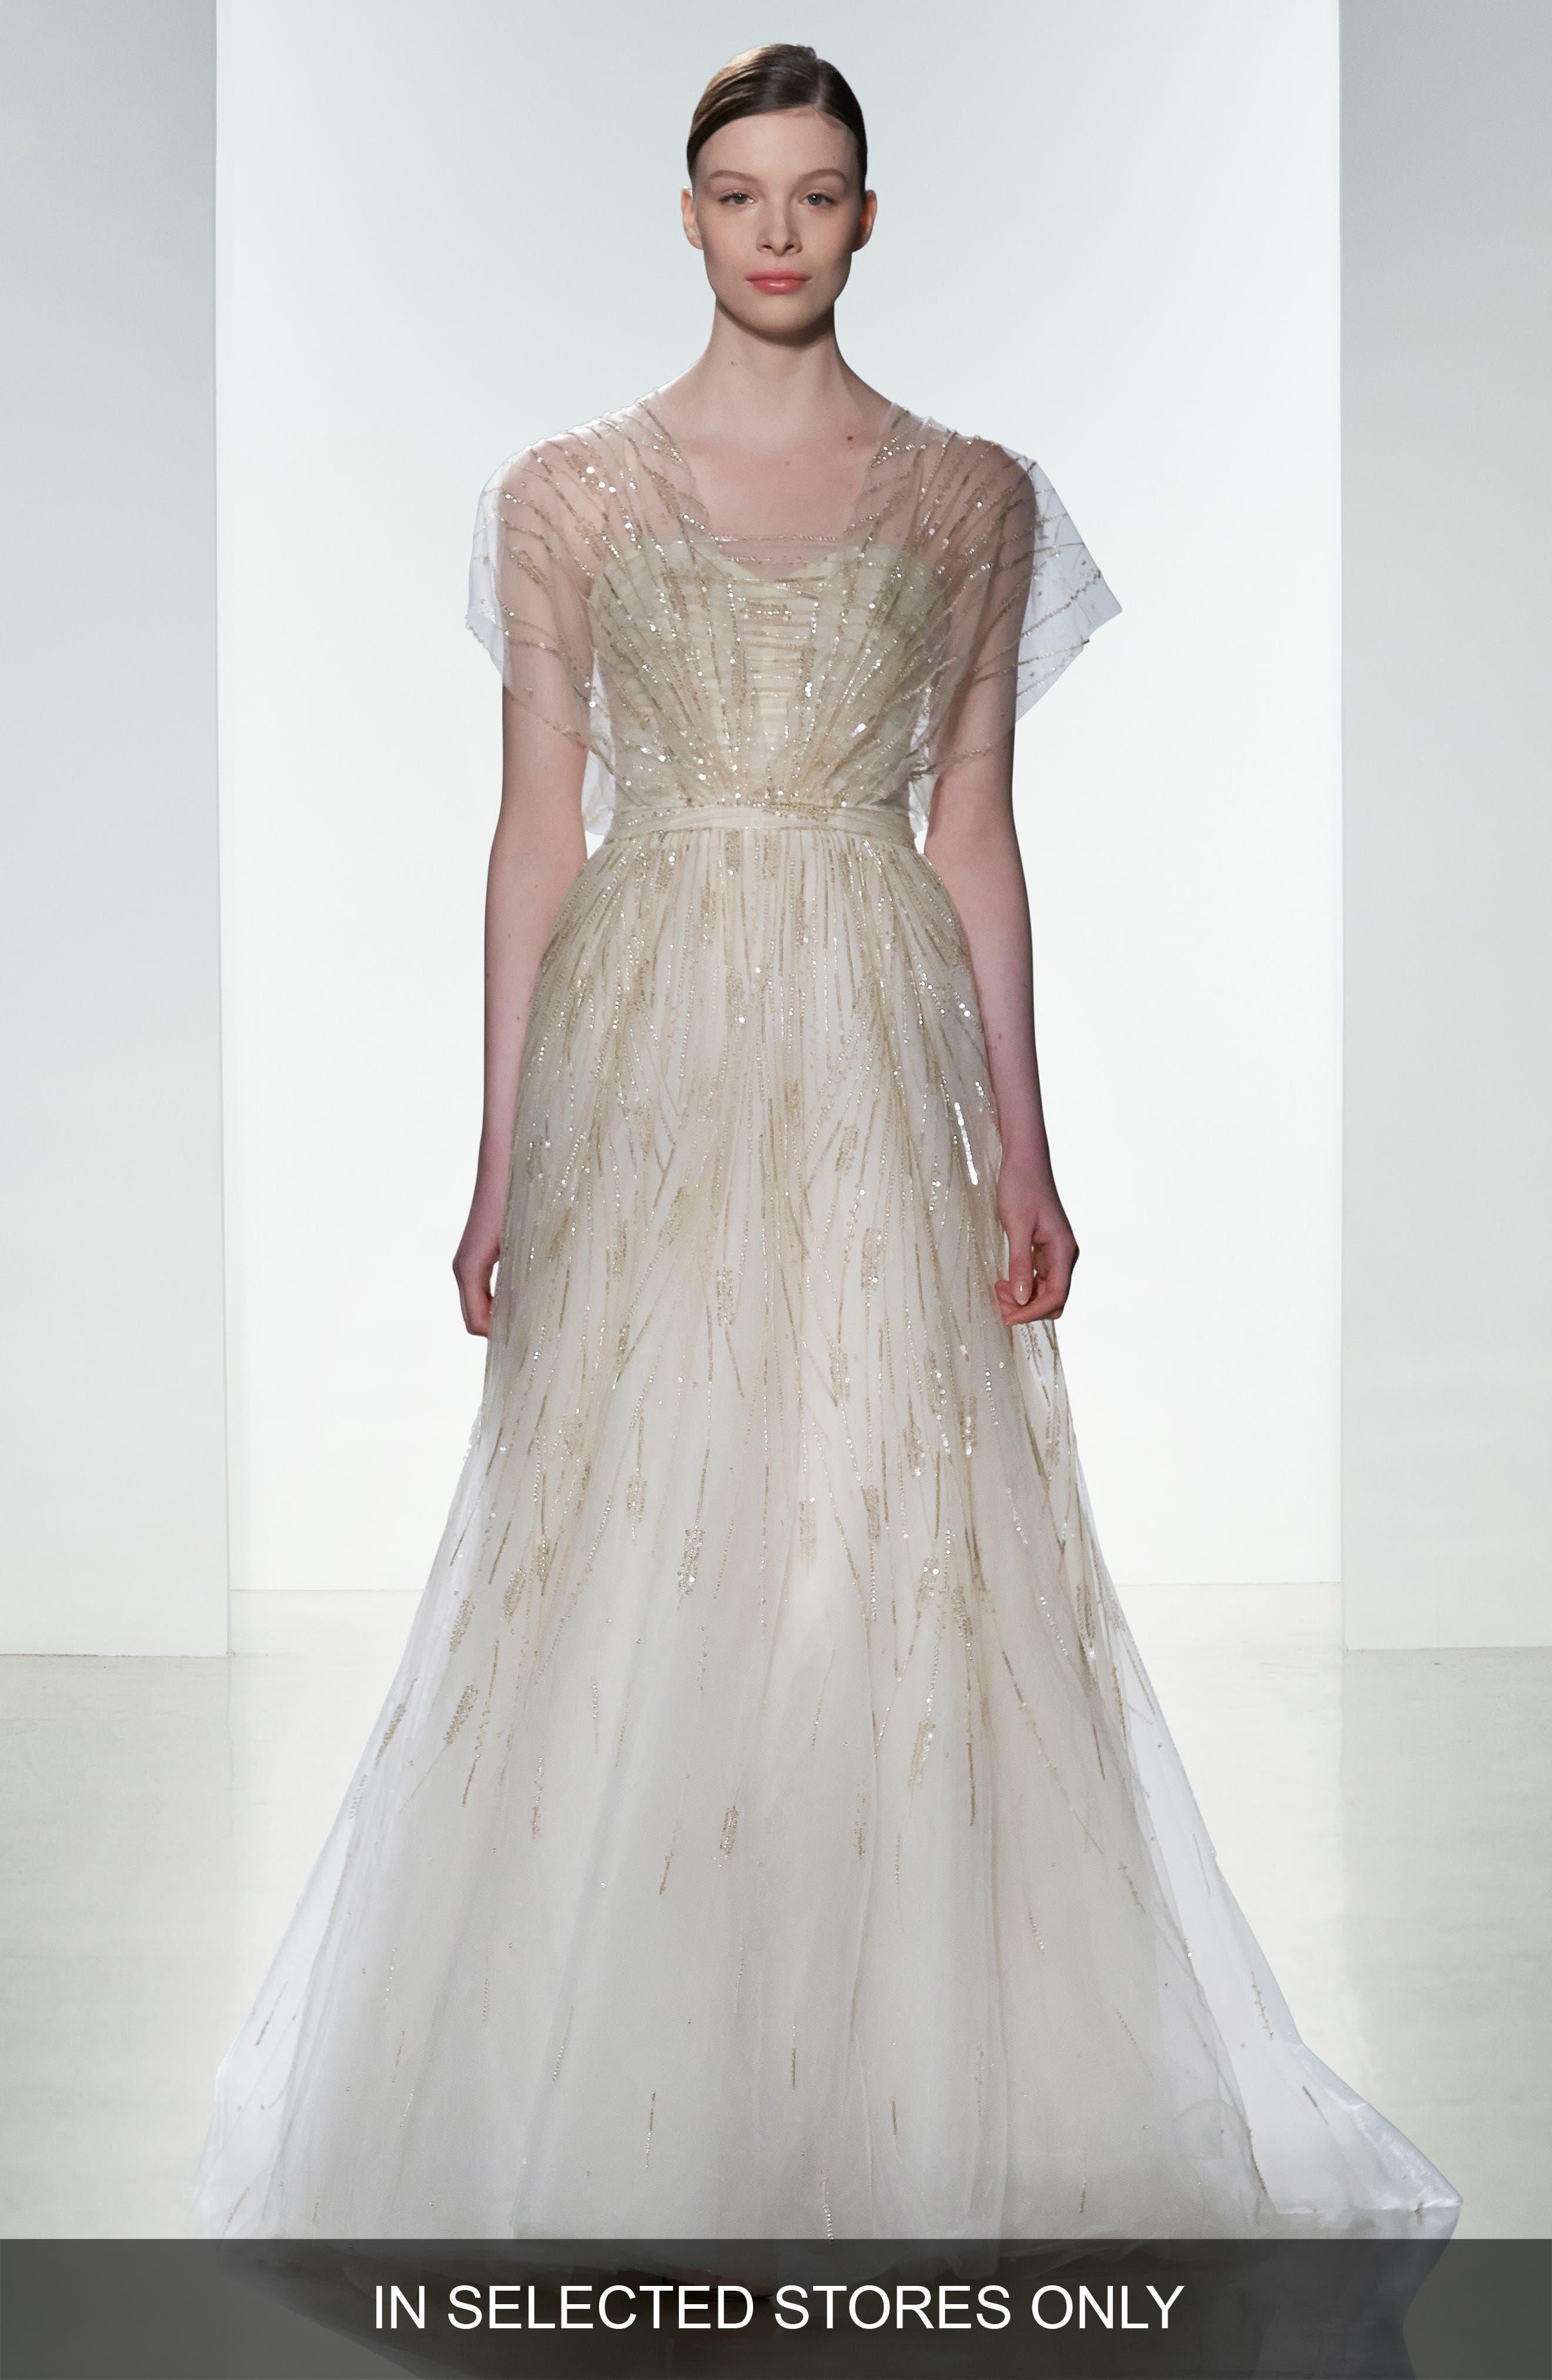 Main Image - Amsale Elaine Organza Overlay Strapless Hand Beaded TulleGown